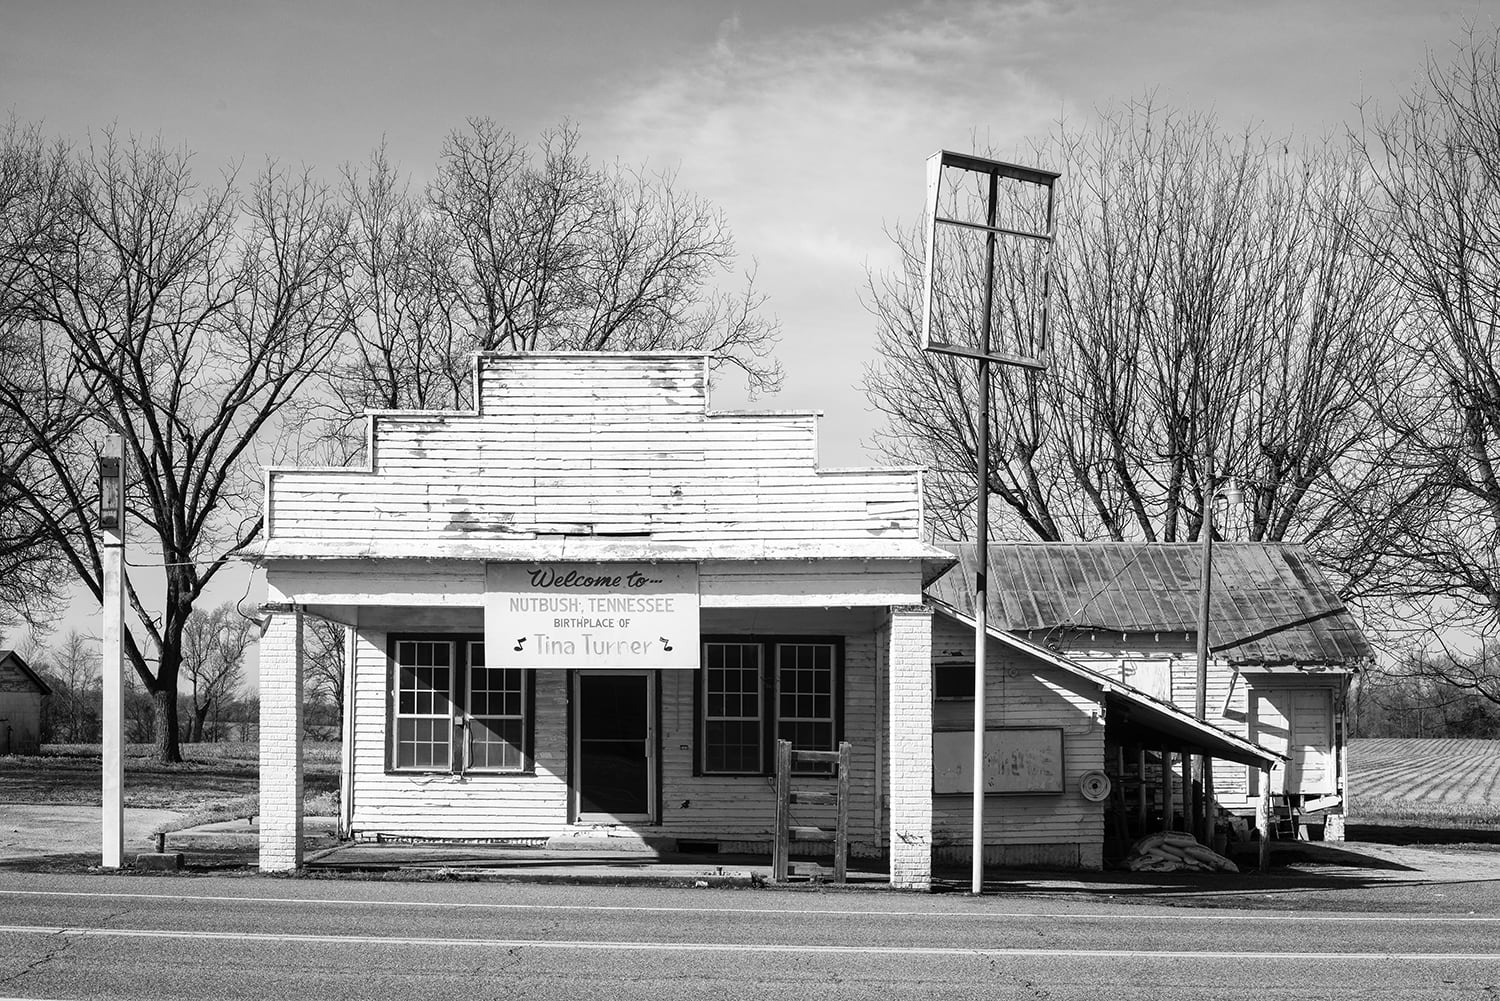 Abandoned Storefront on Highwy 19 Nutbush, Tennessee. Black and white photograph by Keith Dotson.